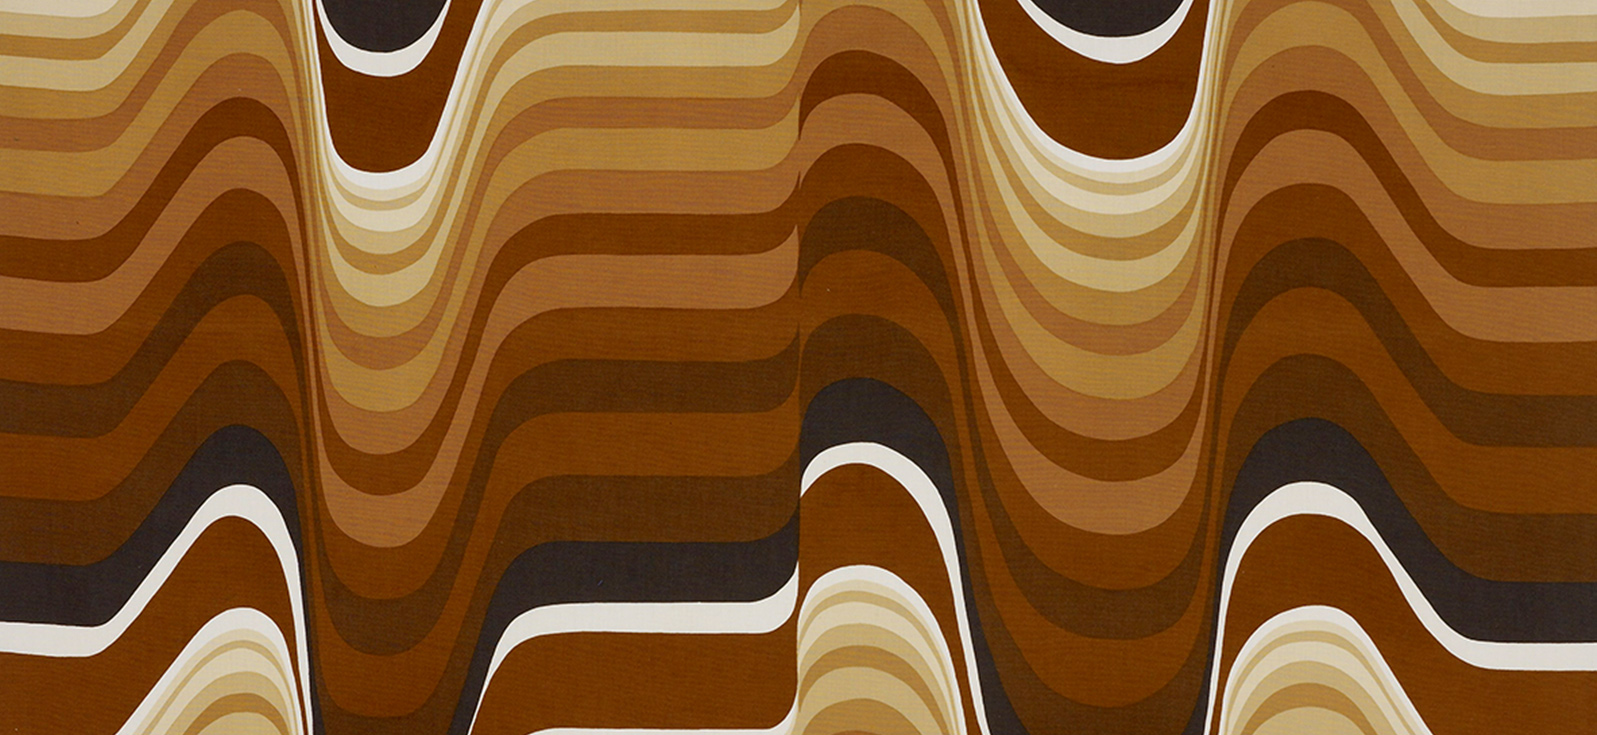 Barbara Brown, Frequency, Heal Fabrics, 1969